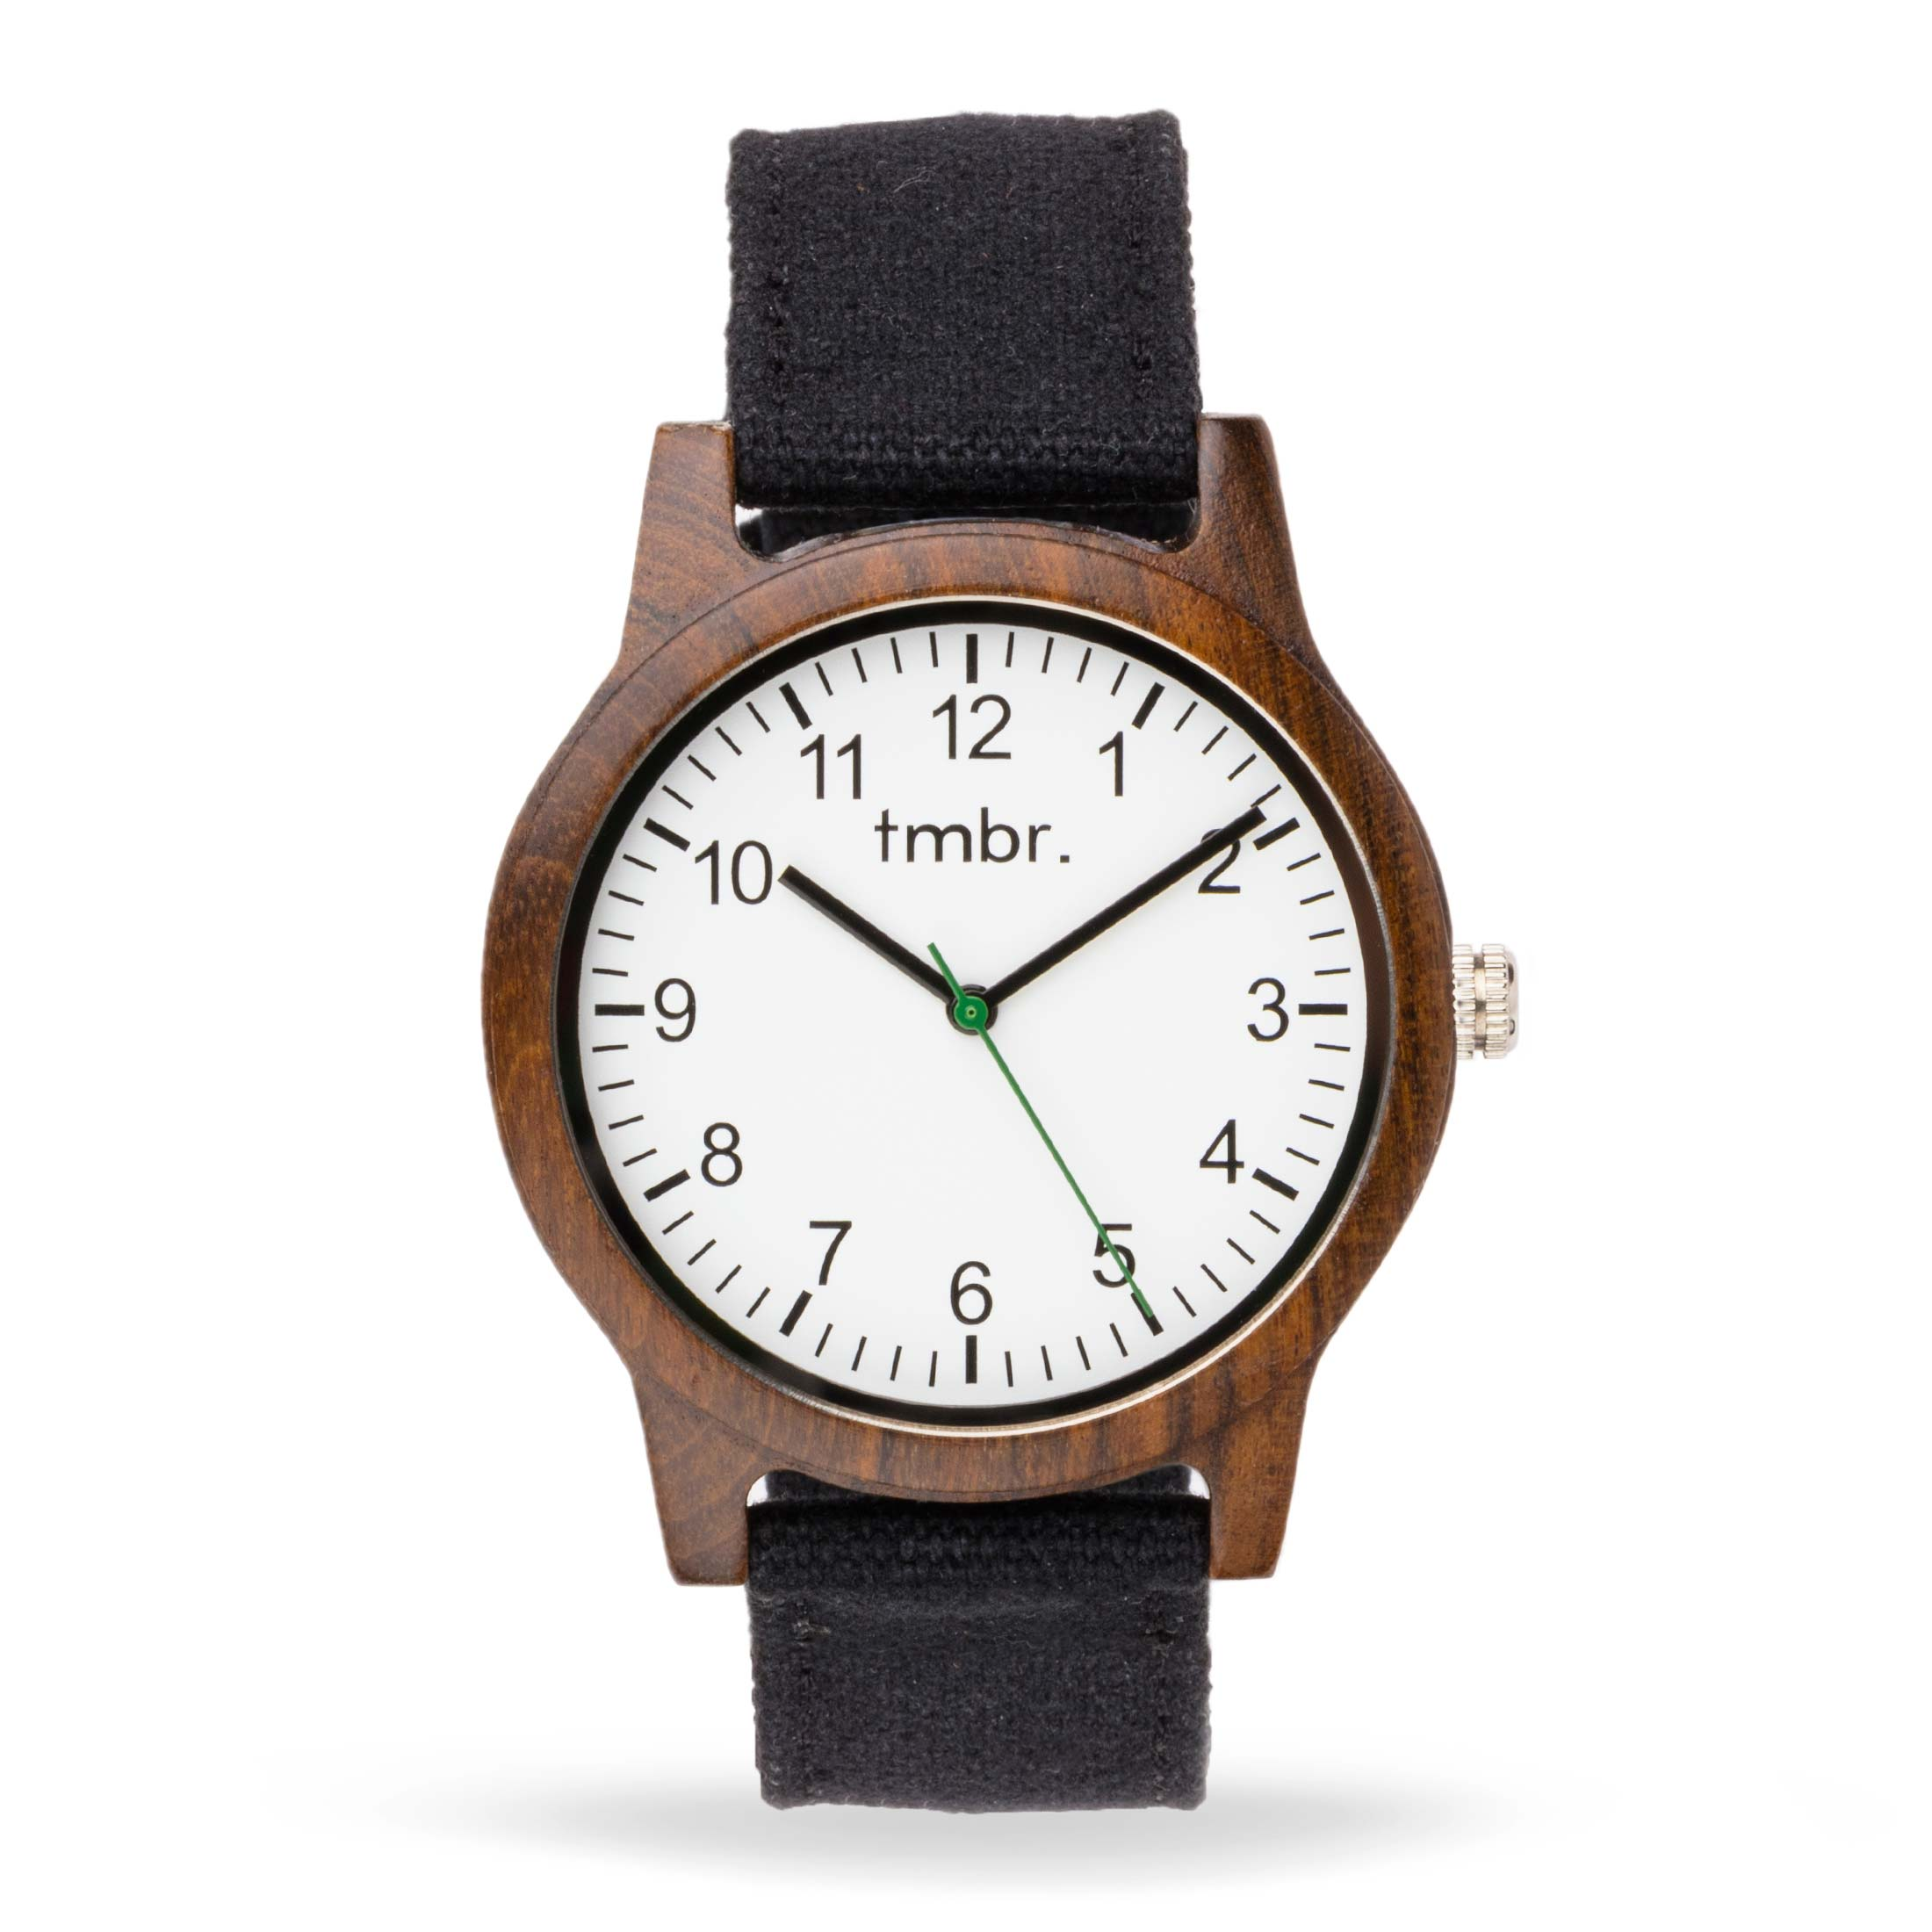 Tmbr Burly Wood Watch With Leather Band